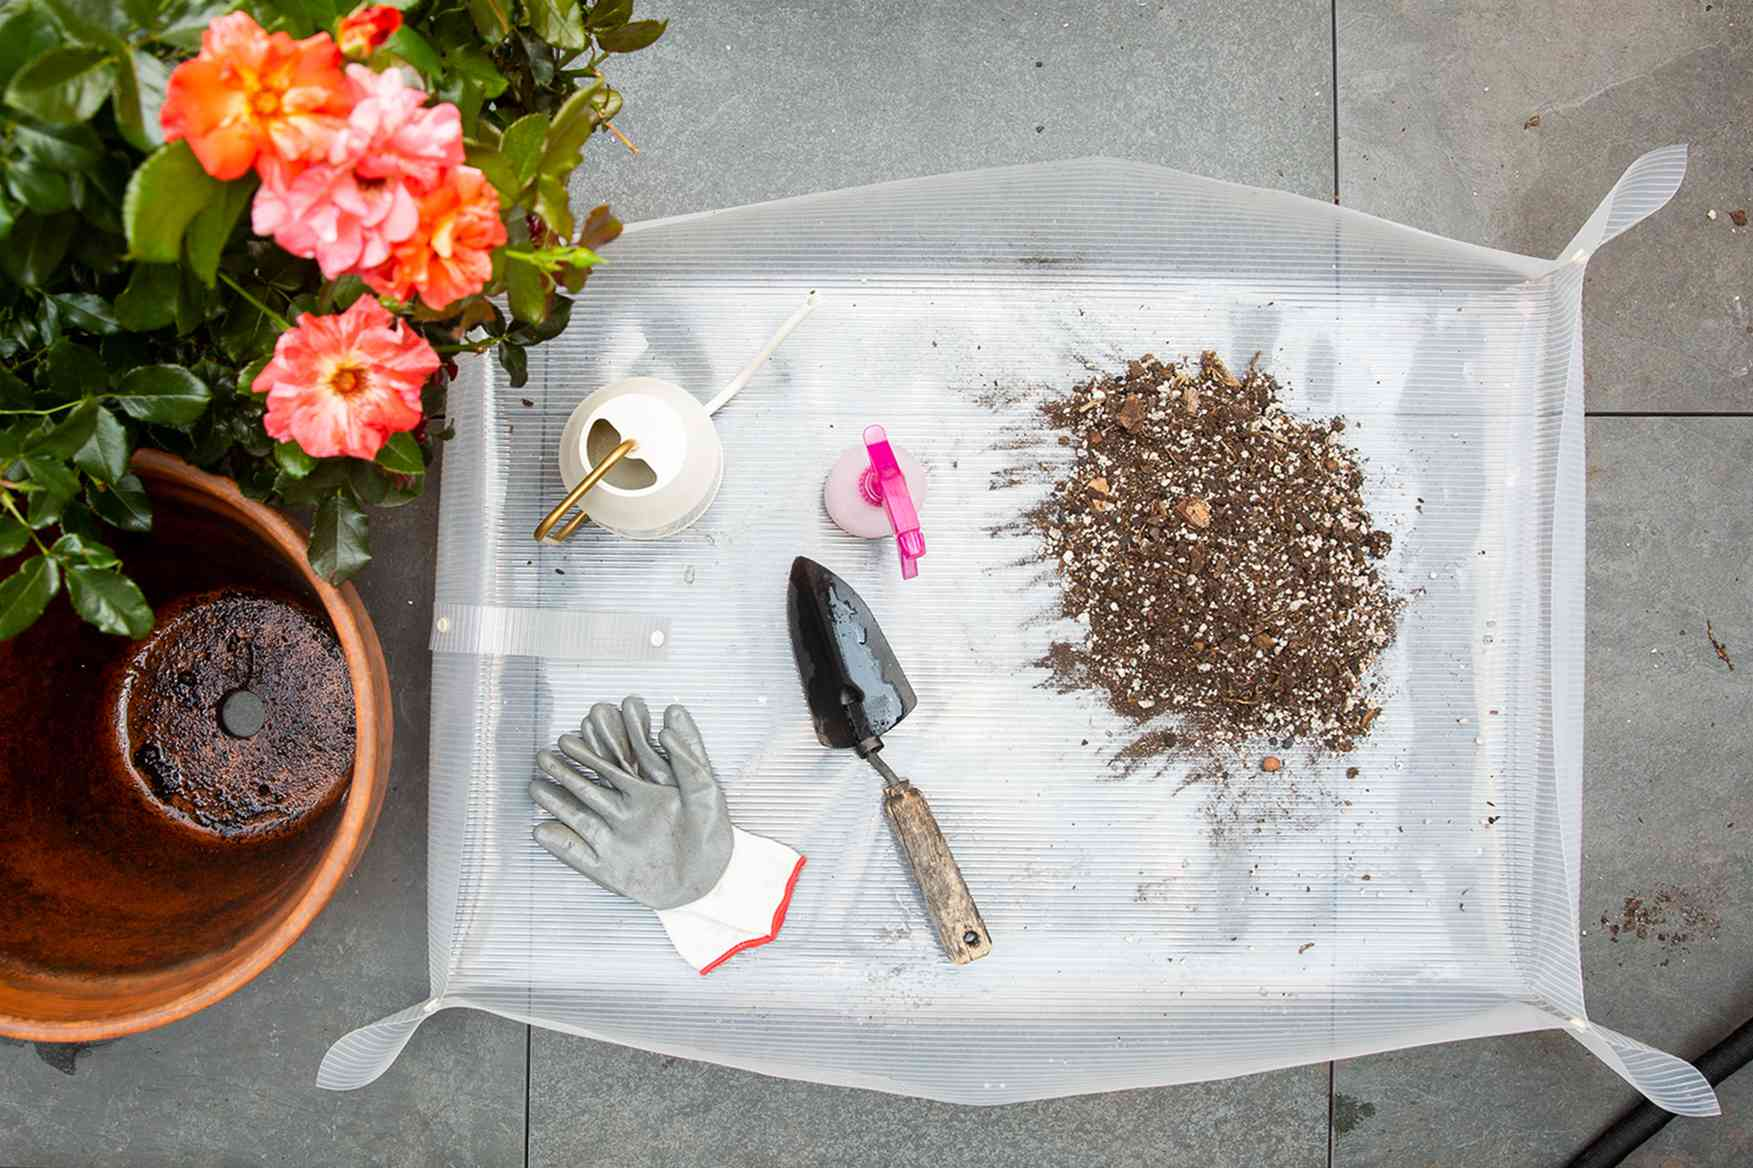 Materials and tools to grow roses in pots